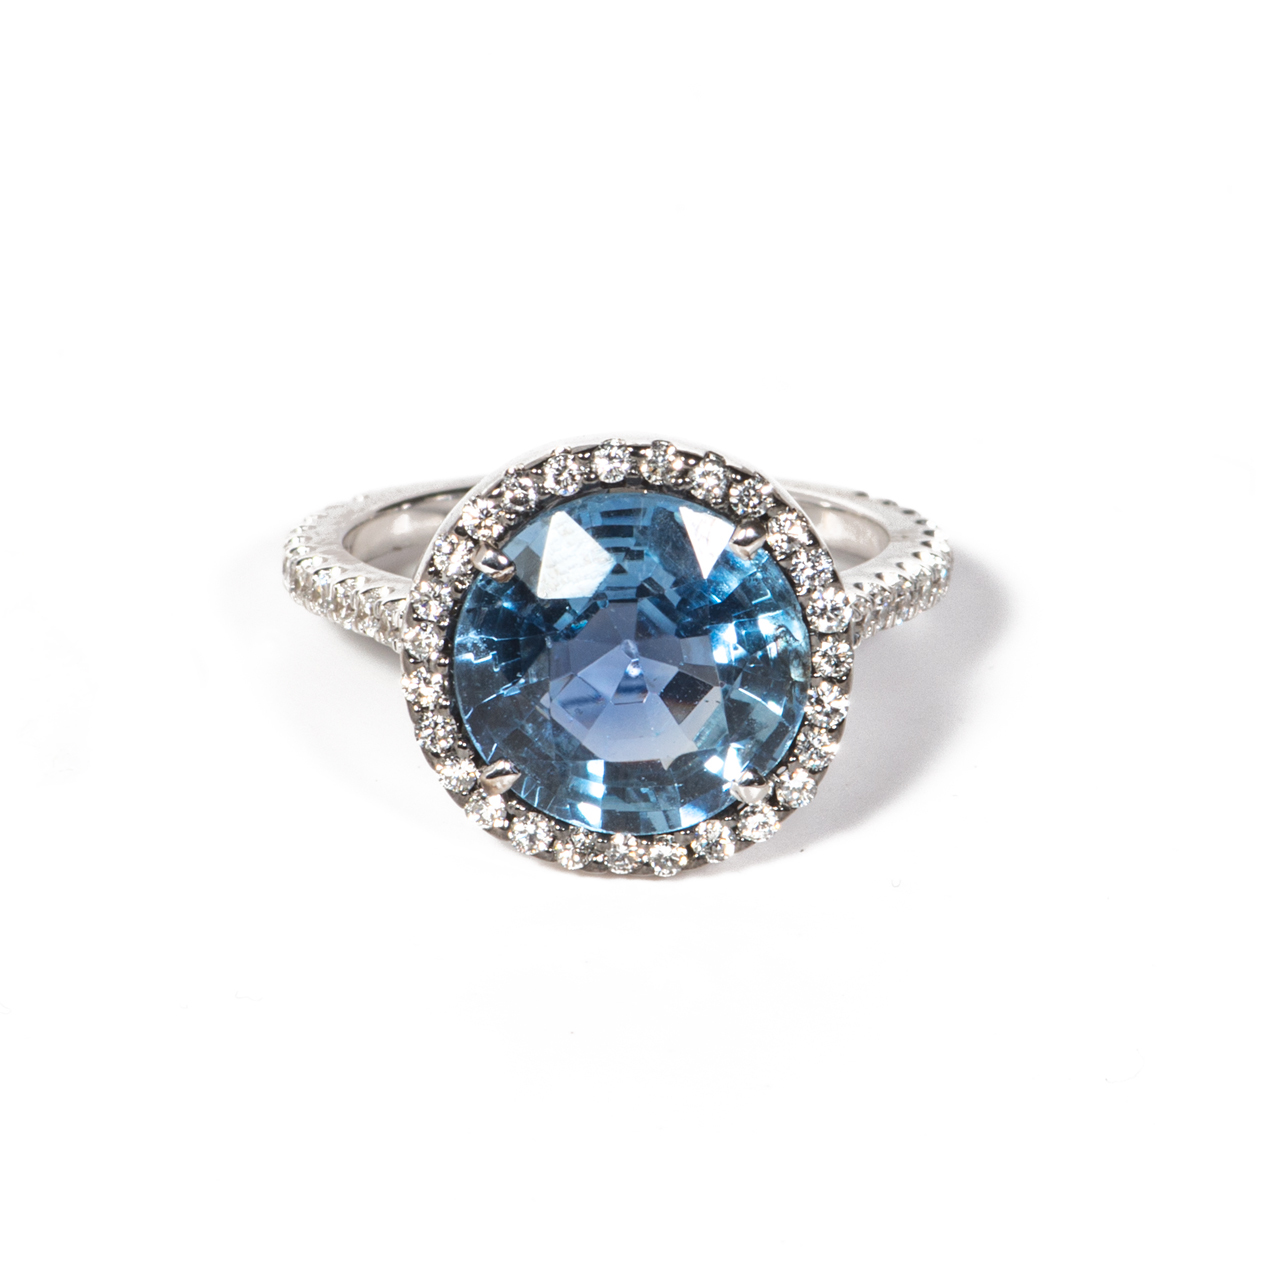 sapphire engagement rings nyc sapphire engagement rings. Black Bedroom Furniture Sets. Home Design Ideas